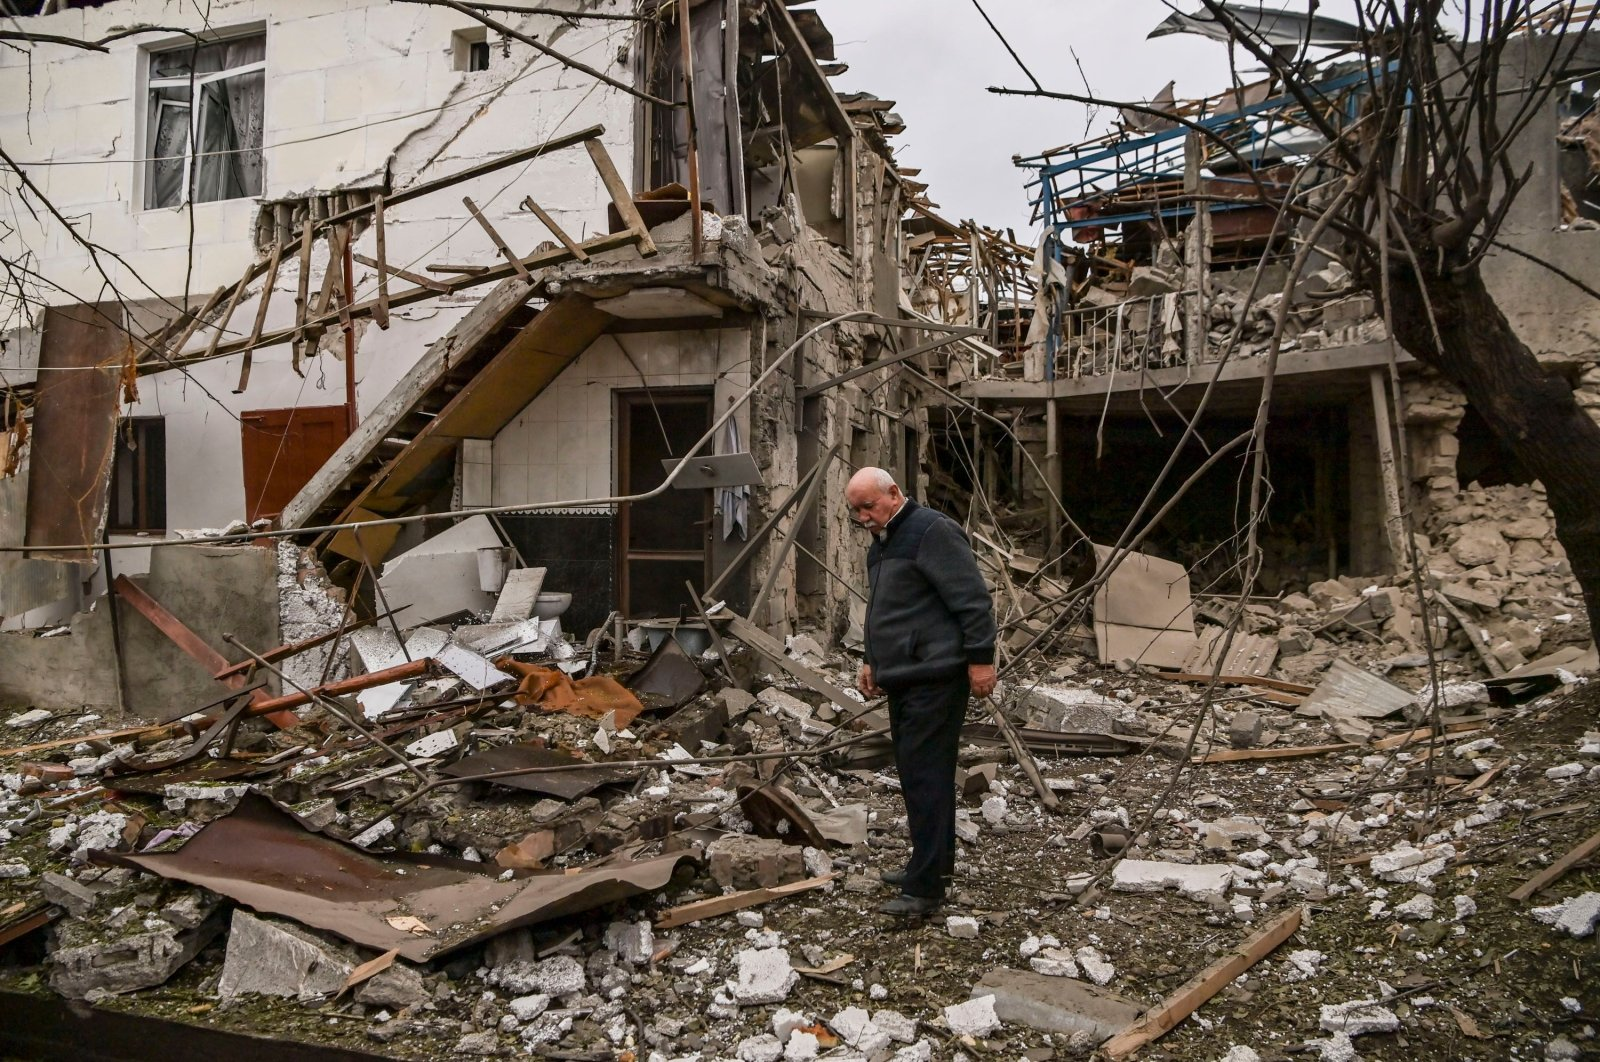 An elderly man stands in front of a destroyed house after shelling in the occupied Nagorno-Karabakh region's main city of Stepanakert., Oct.7, 2020. (AFP)